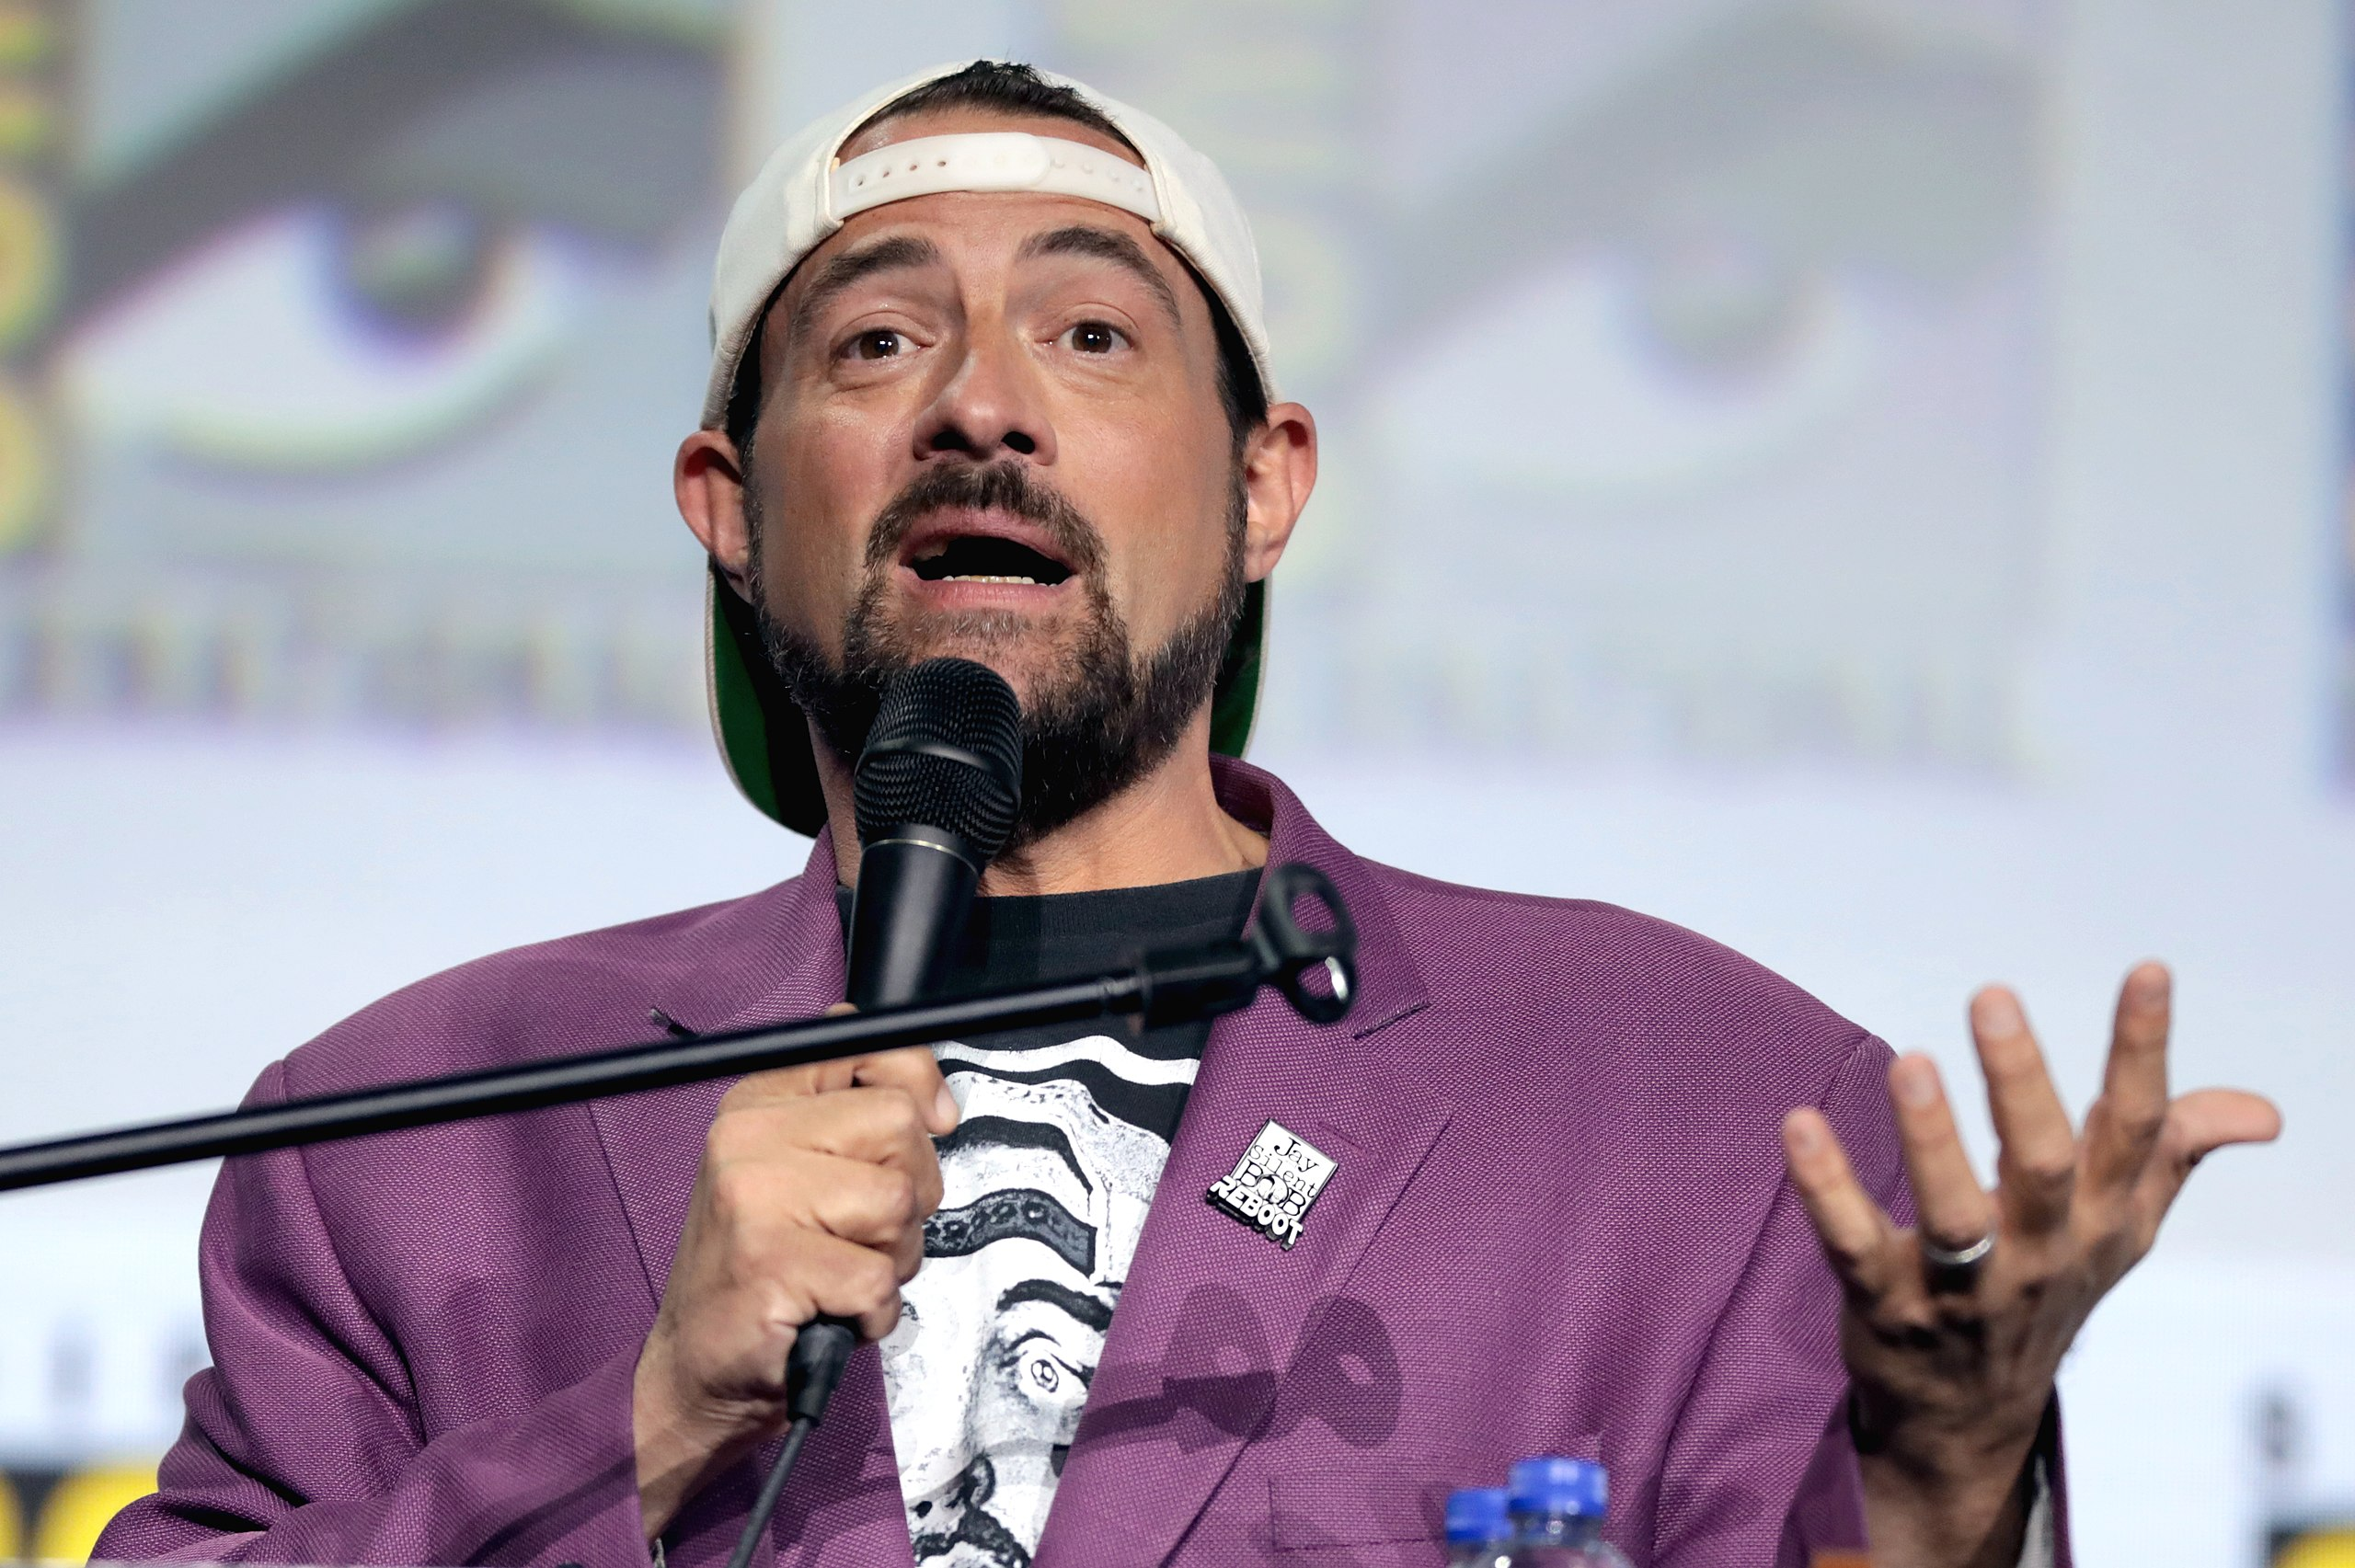 Kevin Smith Working On Mallrats 2 And Clerks III